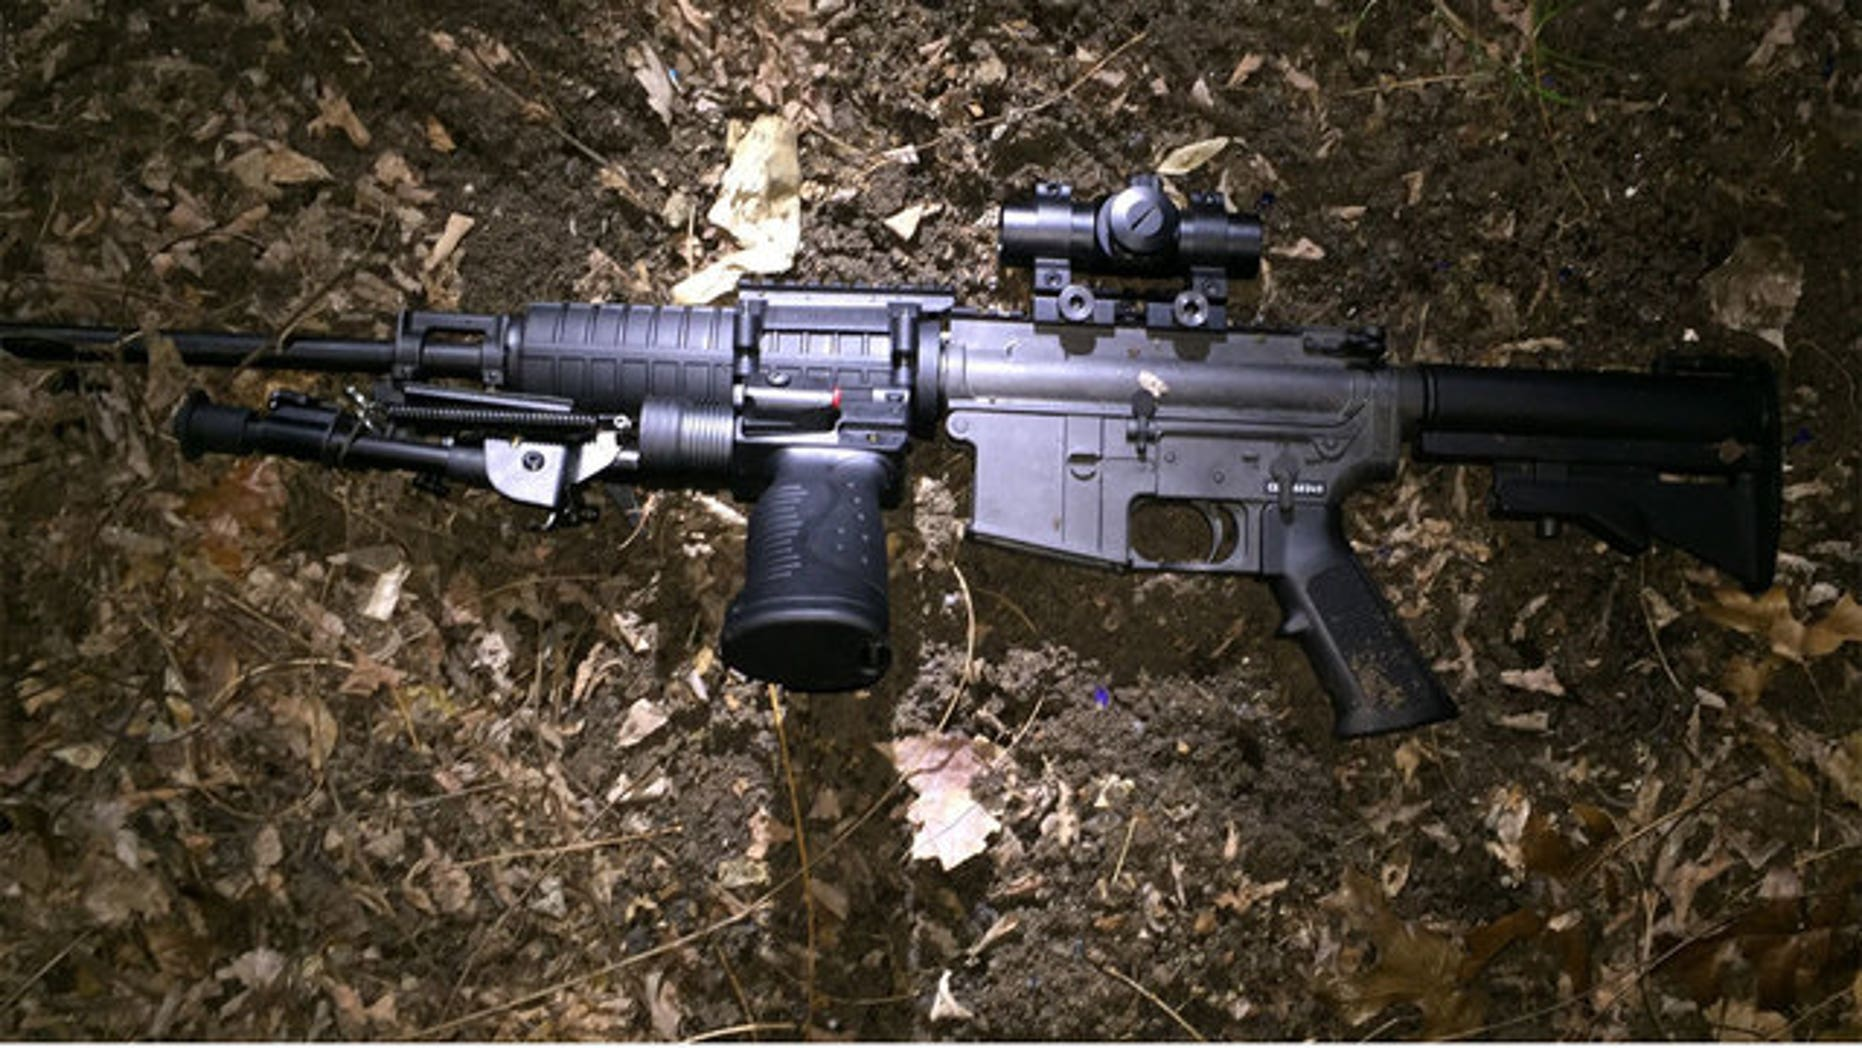 A gun recovered after the shooting.